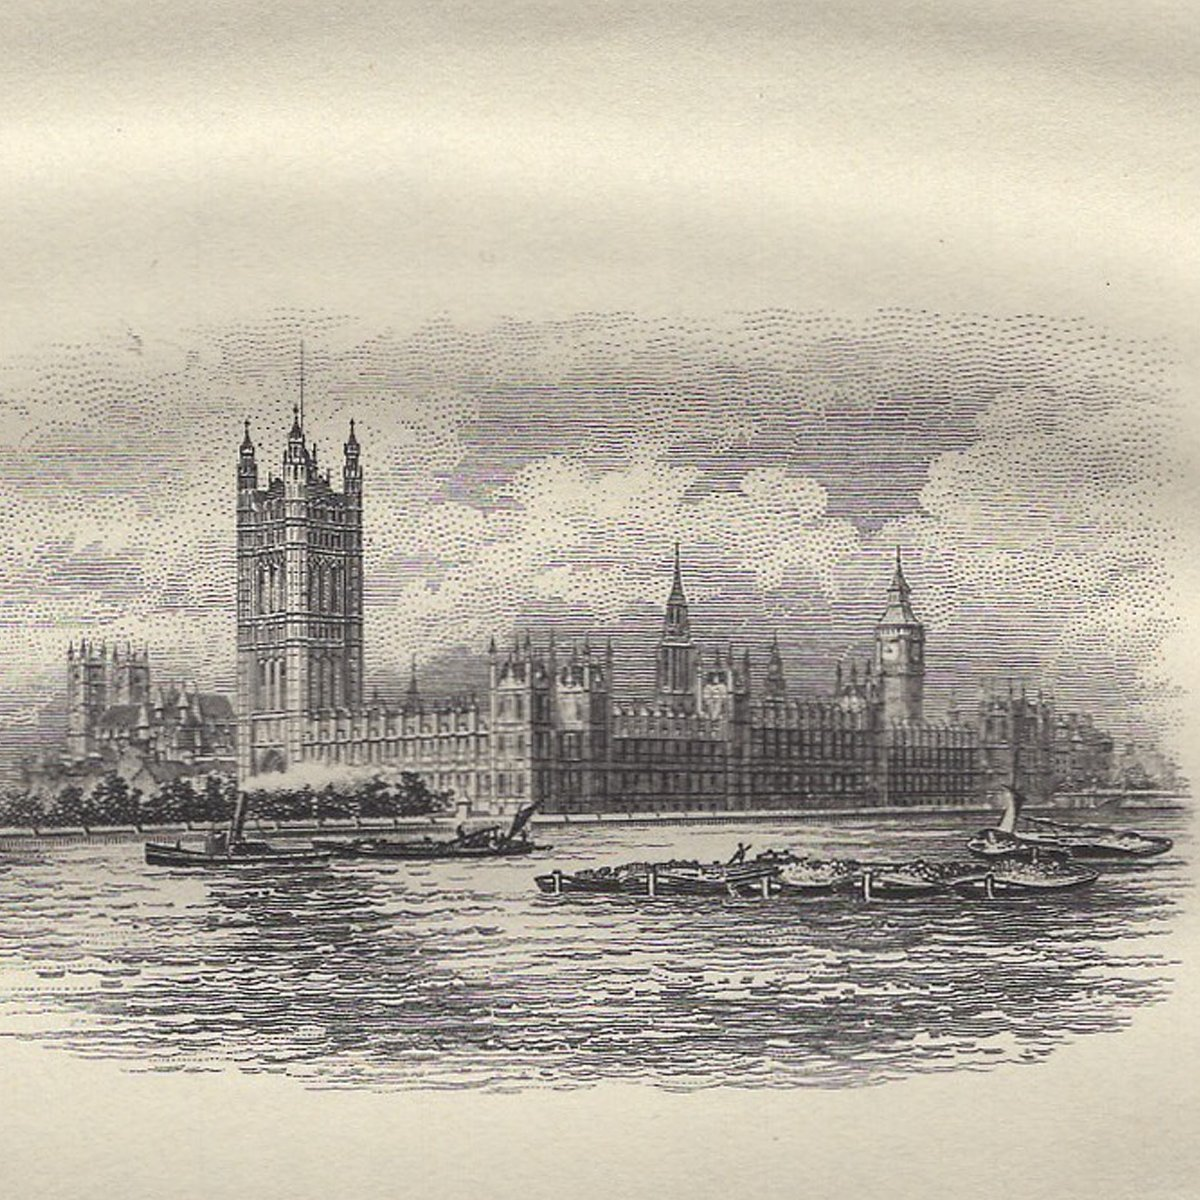 #England, engraved #vignettes showing the #HousesofParliament with barges on the #RiverThames in the foreground, #BigBen and #WestminsterAbbey in the background, one in black, one in brown, uncirculated (2 items)£120-£160 https://www.dnw.co.uk/auctions/catalogue/lot.php?auction_id=537&lot_uid=354291… #notaphily #papermoney #auctionpic.twitter.com/R6xJ0BZbFU